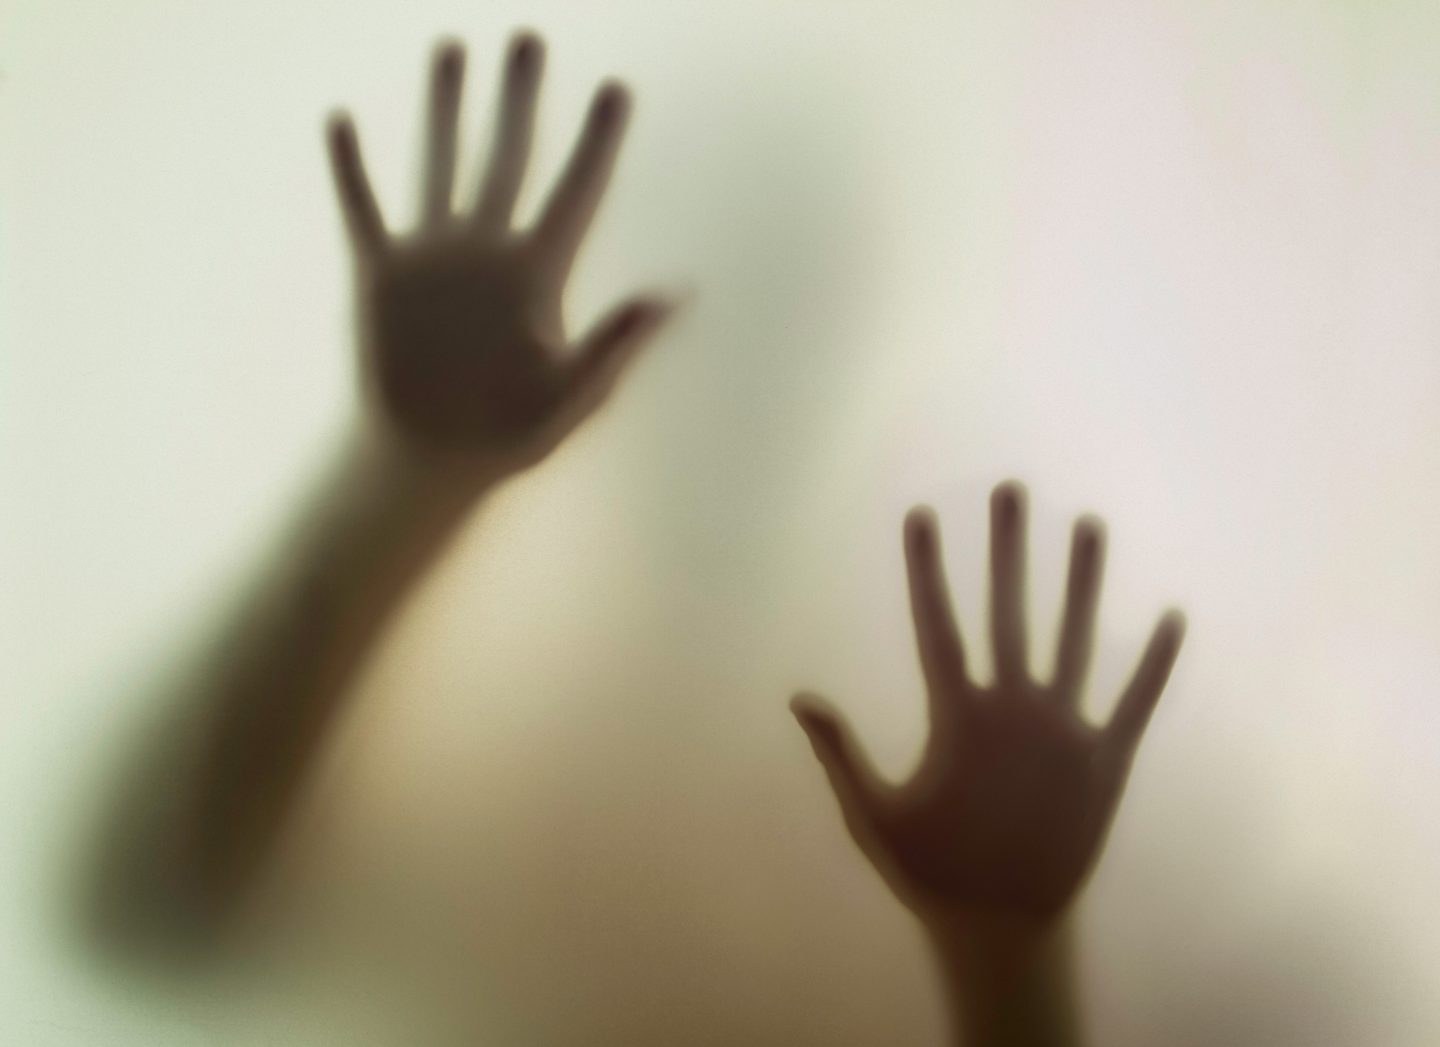 Hands viewed from a smoky glass